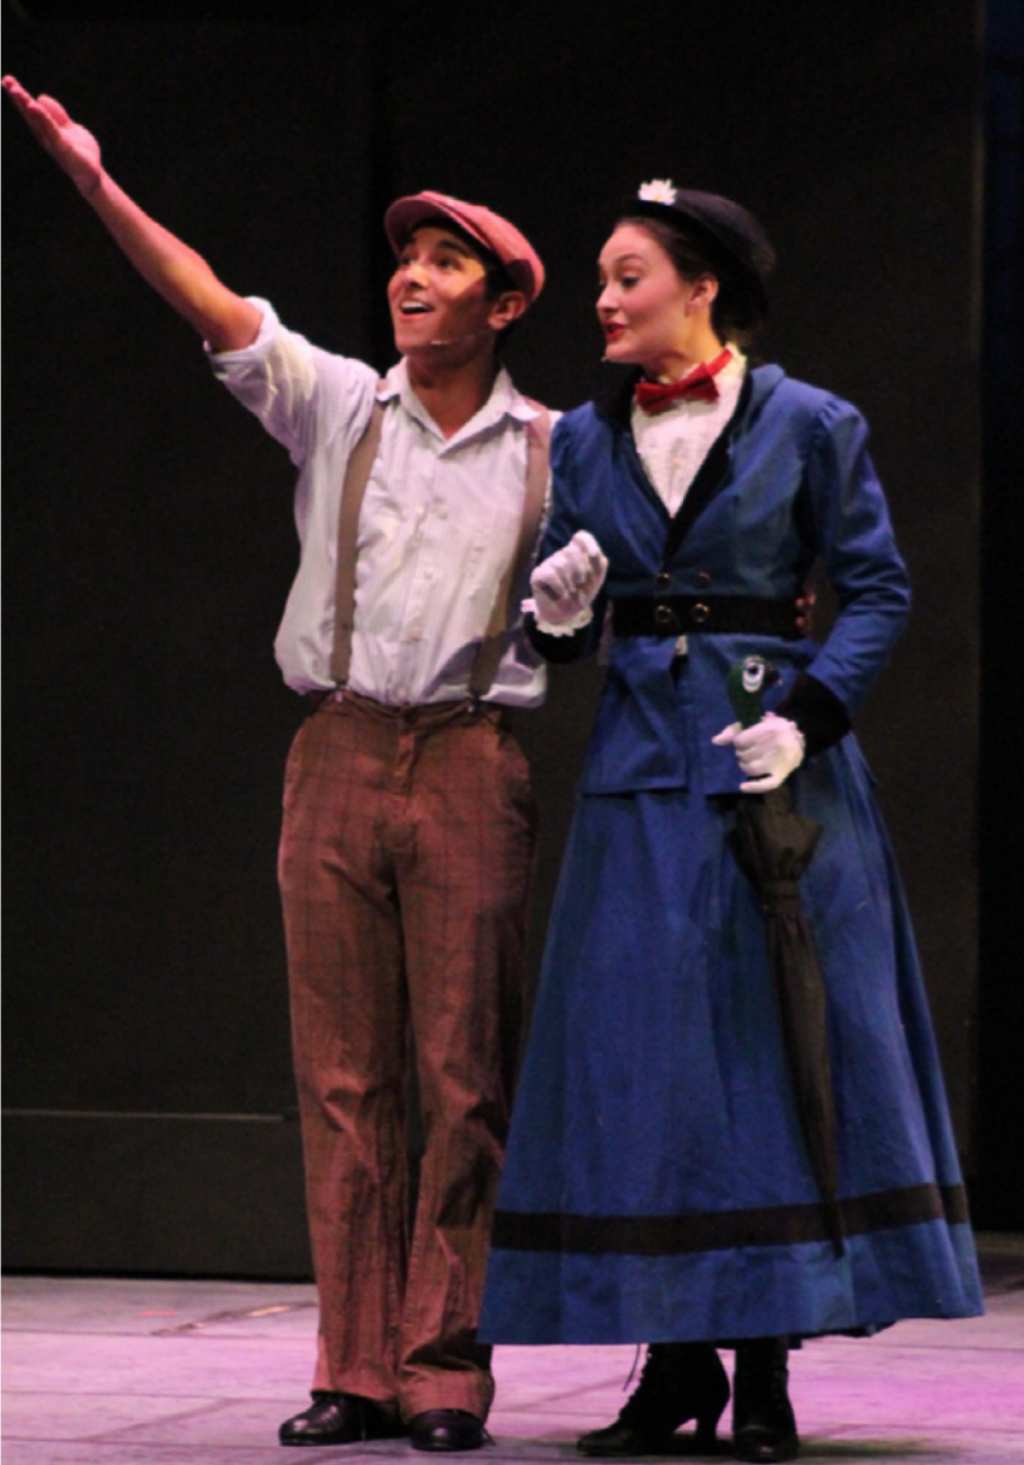 A Night of Magic: Mary Poppins at the Silver Center